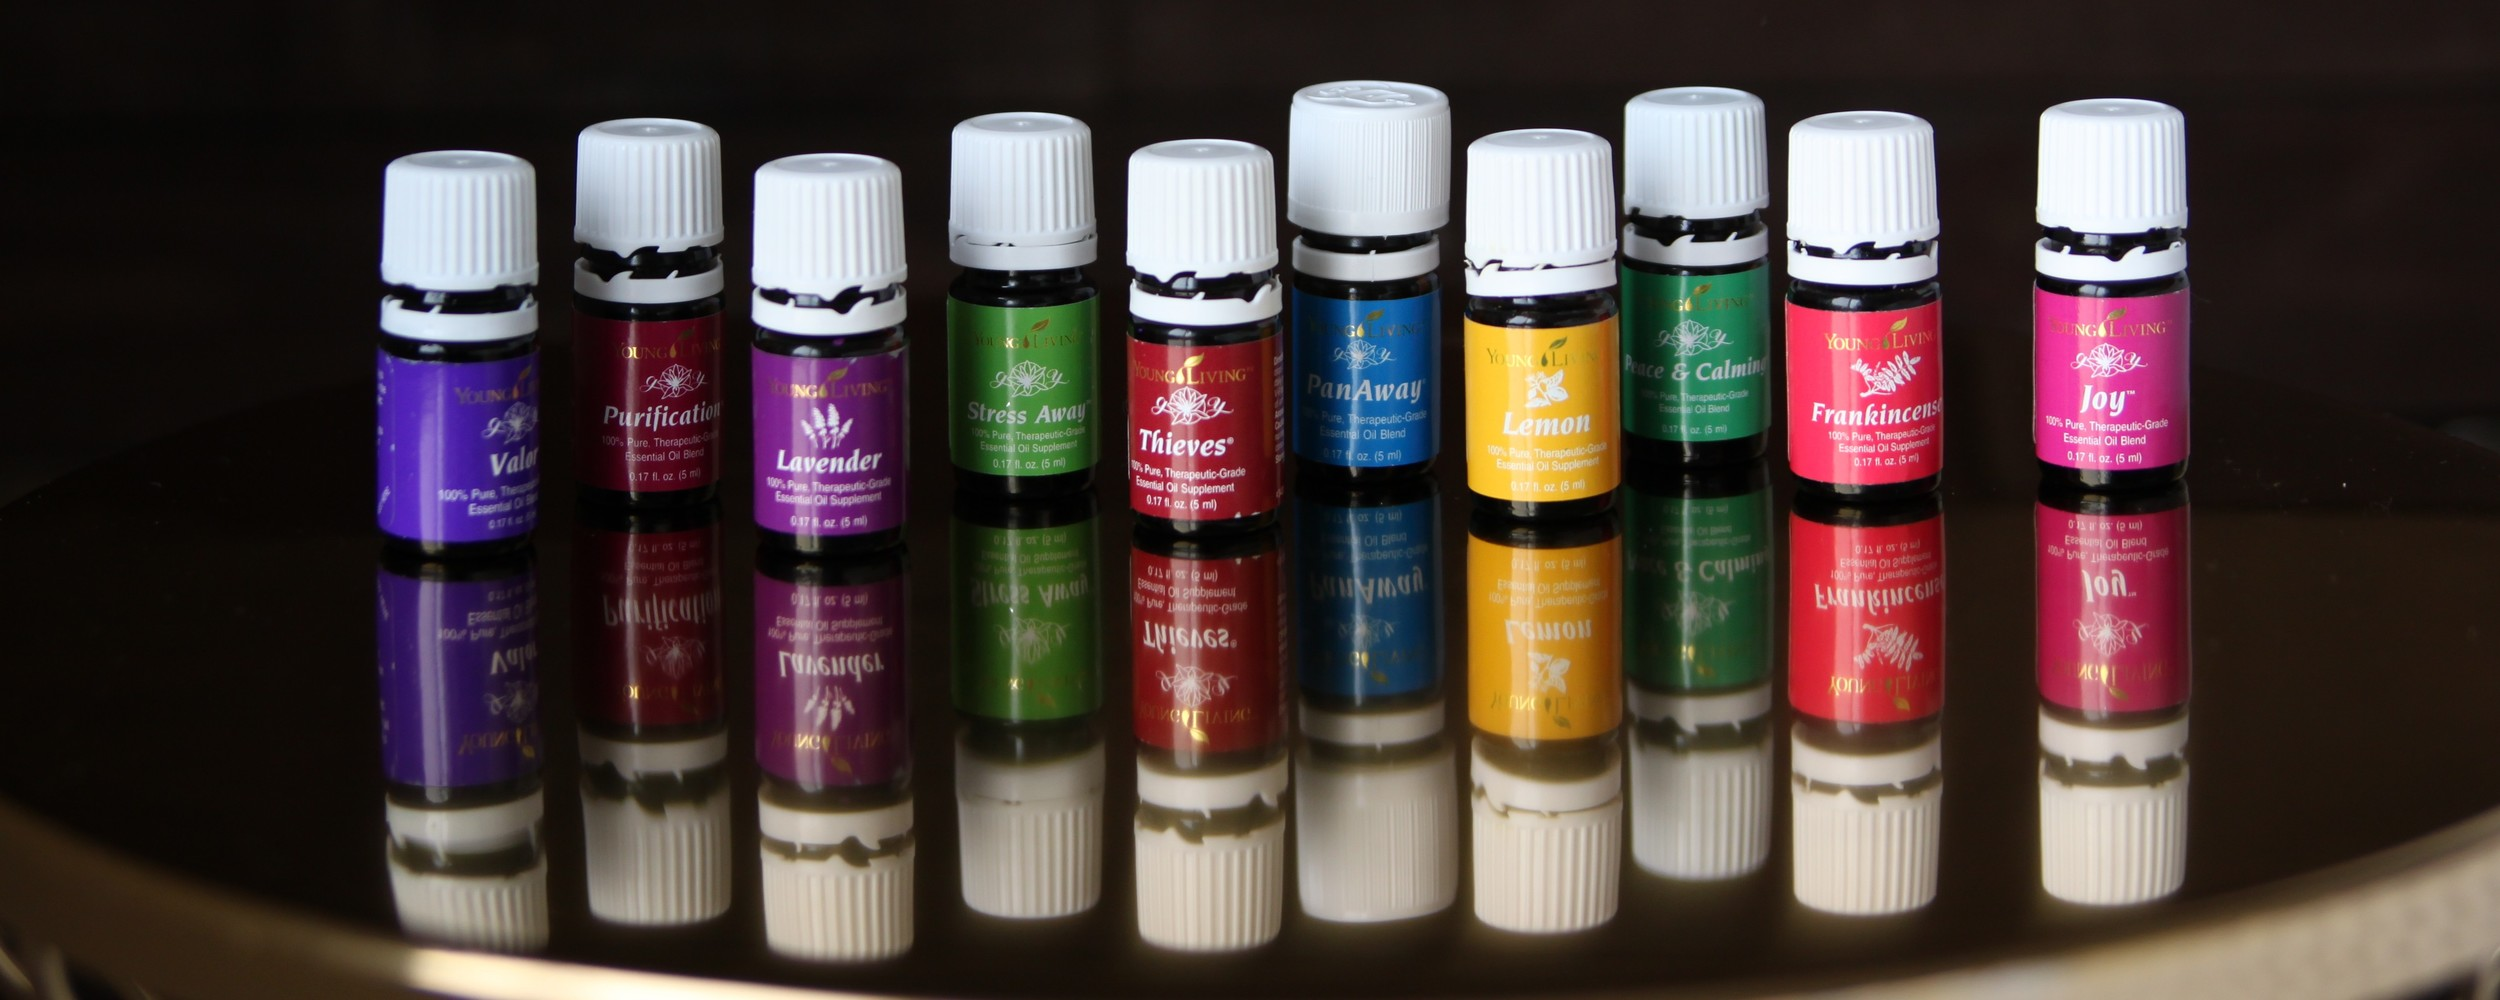 How We Use Essential Oils